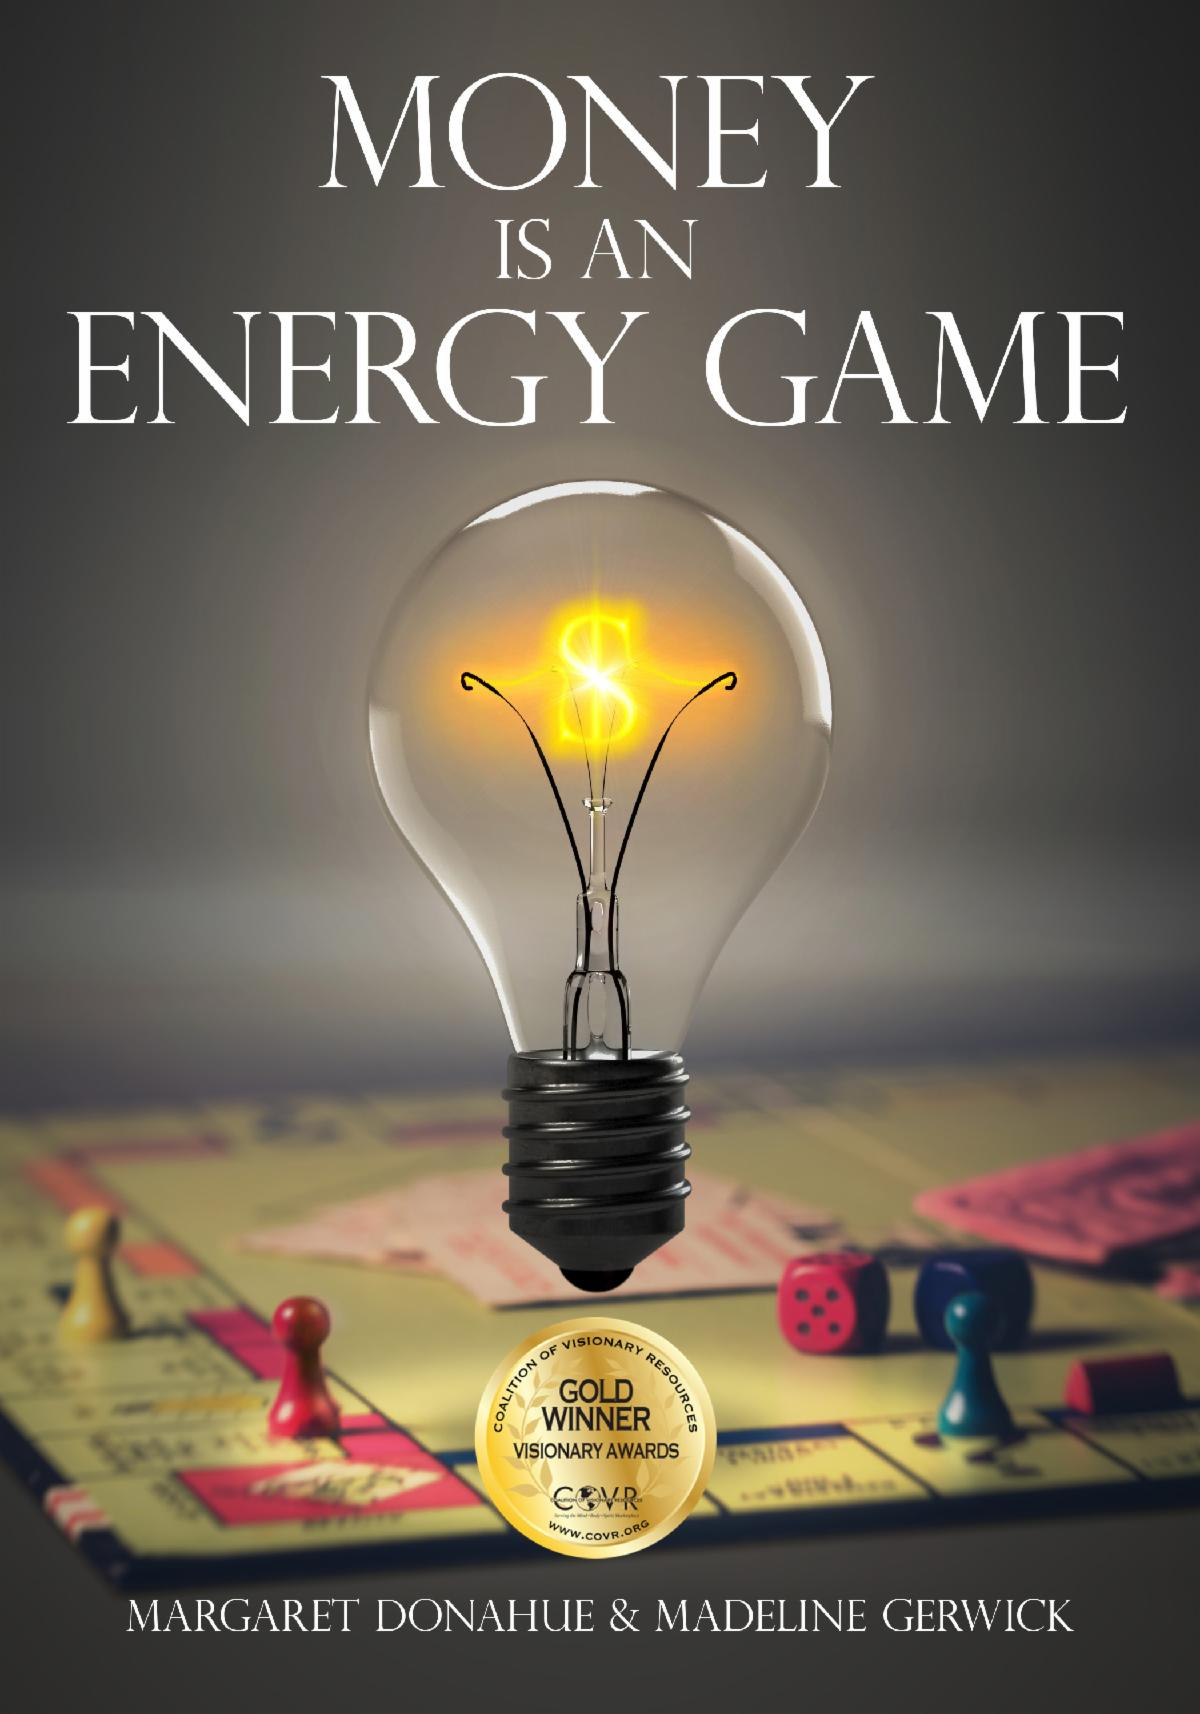 Money is an Energy Game . How know here ?